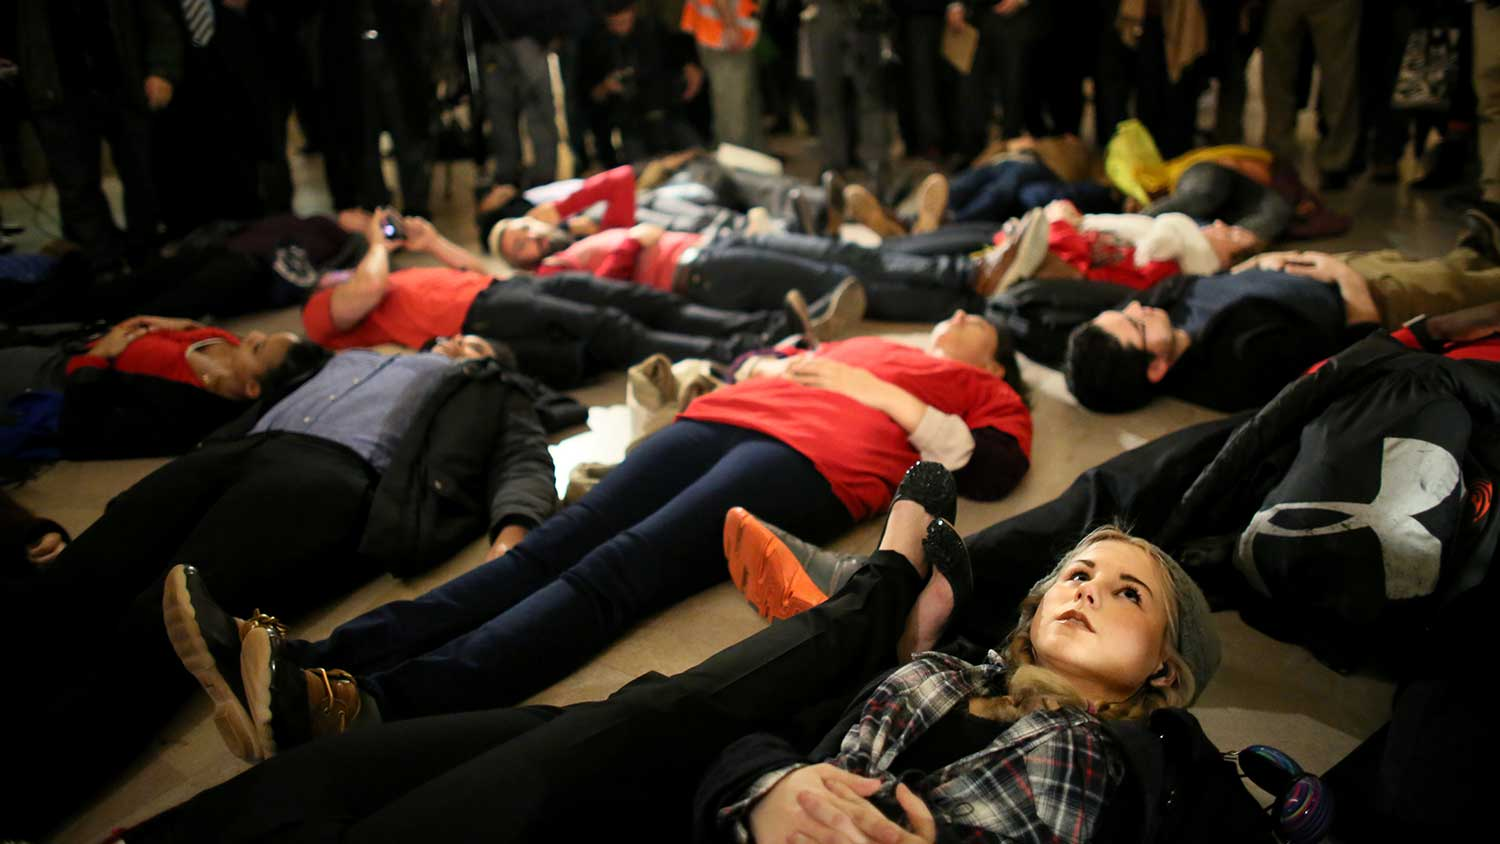 Lindsey Ellefson, 22, lies down during a protest in New York's Grand Central Terminal after the grand jury's decision on Dec. 3, 2014.